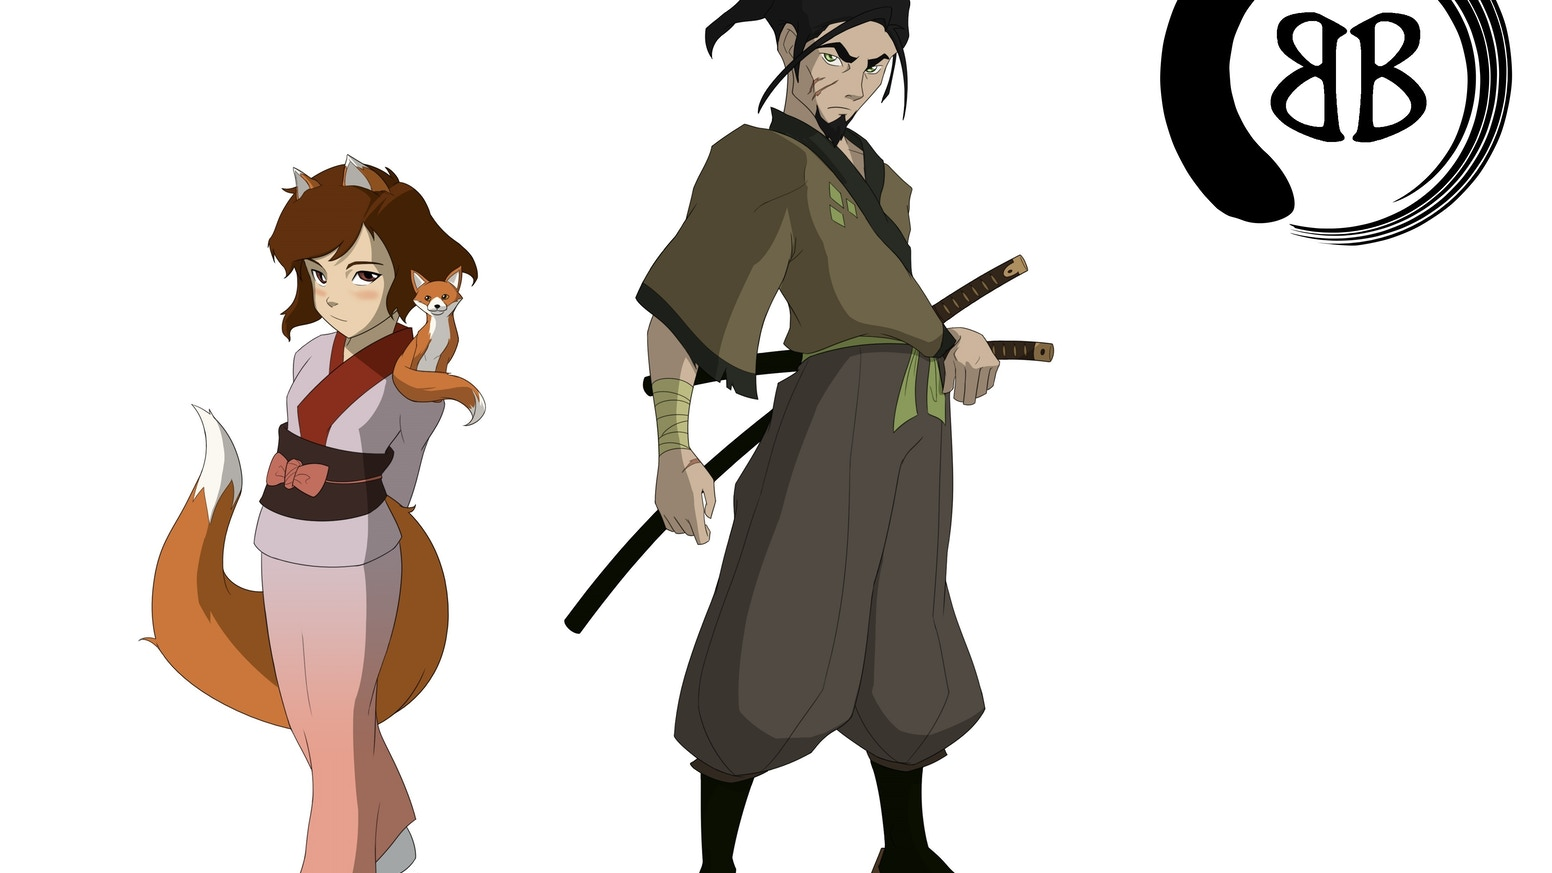 A Haiku based Storytelling Card Game -- Inspired by Avatar: The Last Airbender, The Legend of Korra, and the works of Hayao Miyazaki.